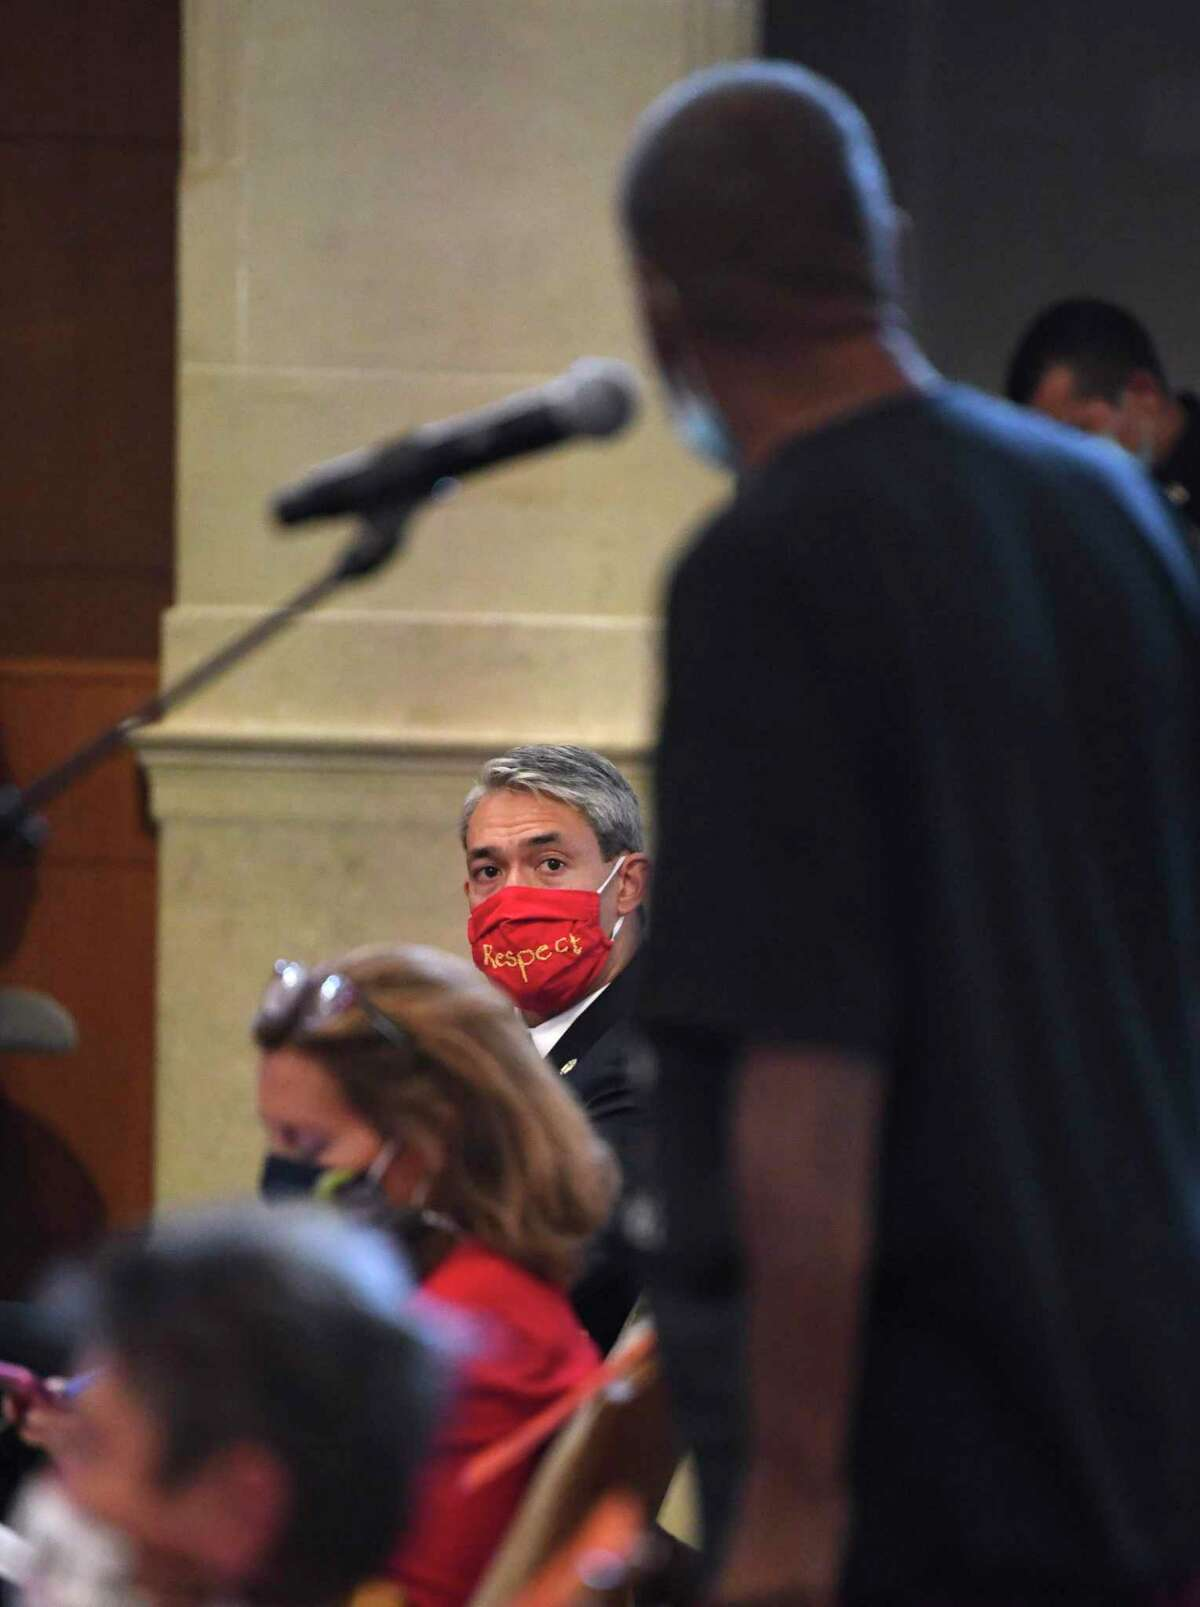 San Antonio Mayor Ron Nirenberg listens as James Myart speaks about his desire for more diversity on the San Antonio Police Department during a San Antonio City Council Public Safety Committee meeting on Thursday, June 18, 2020.